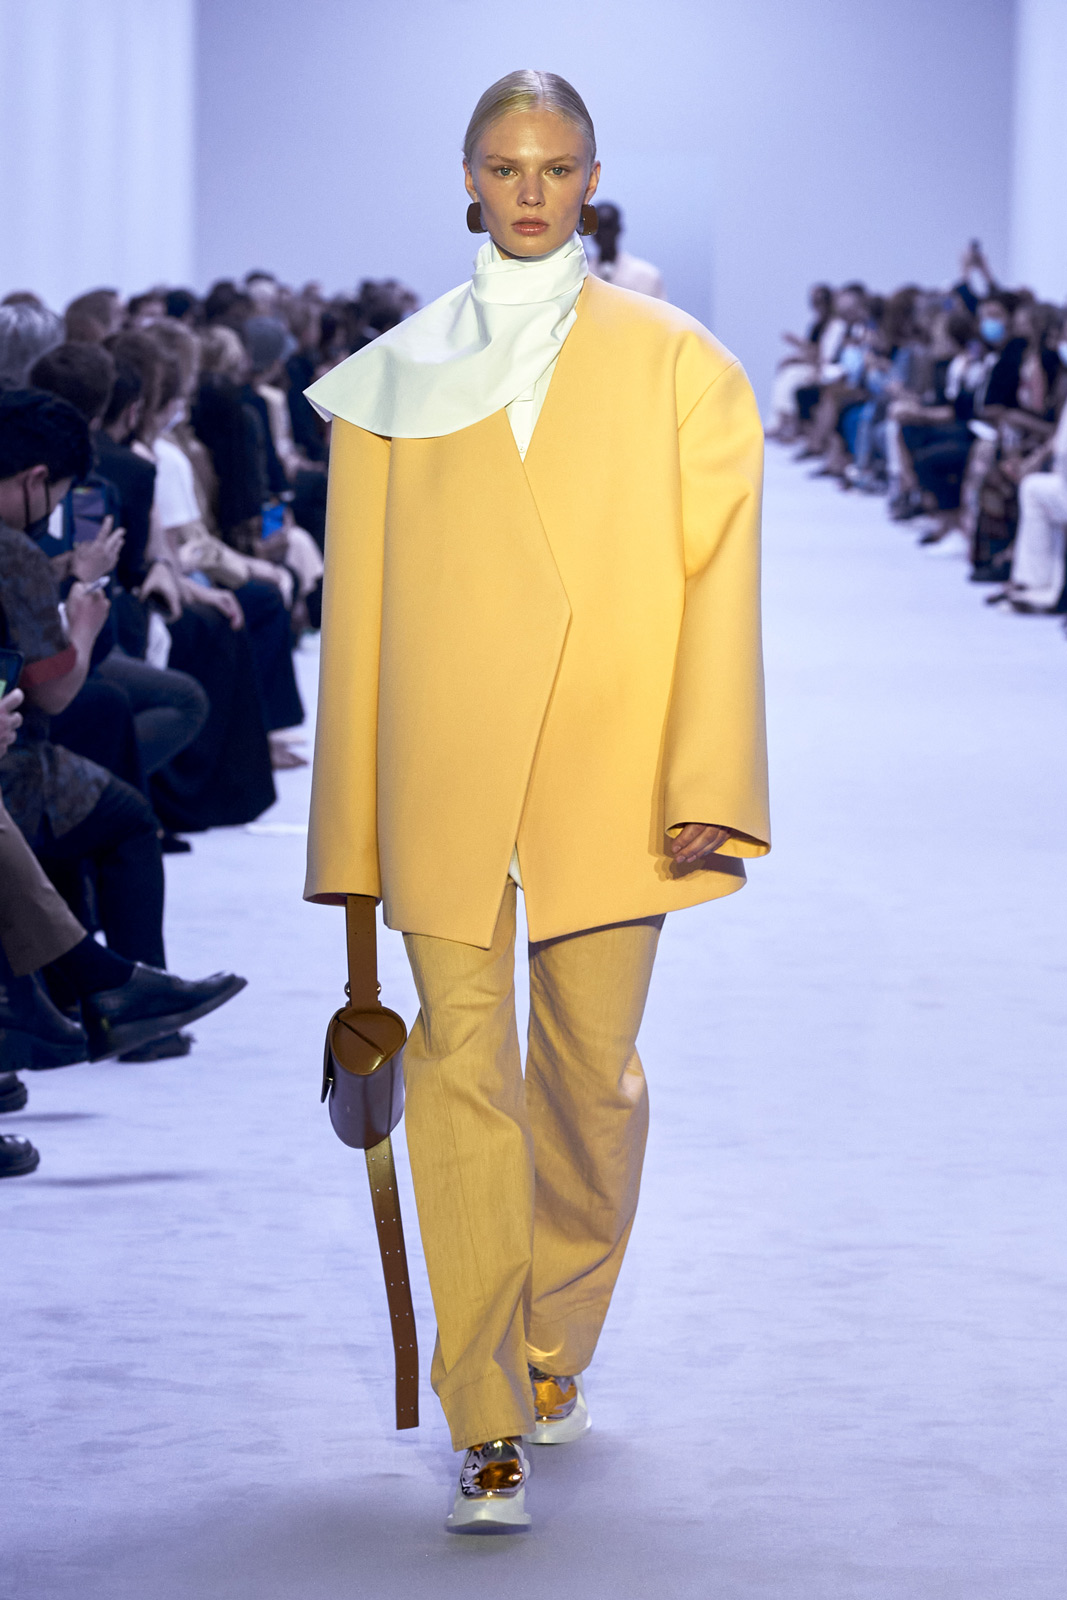 Jil Sander discovers a mix of power, tension, and subtlety